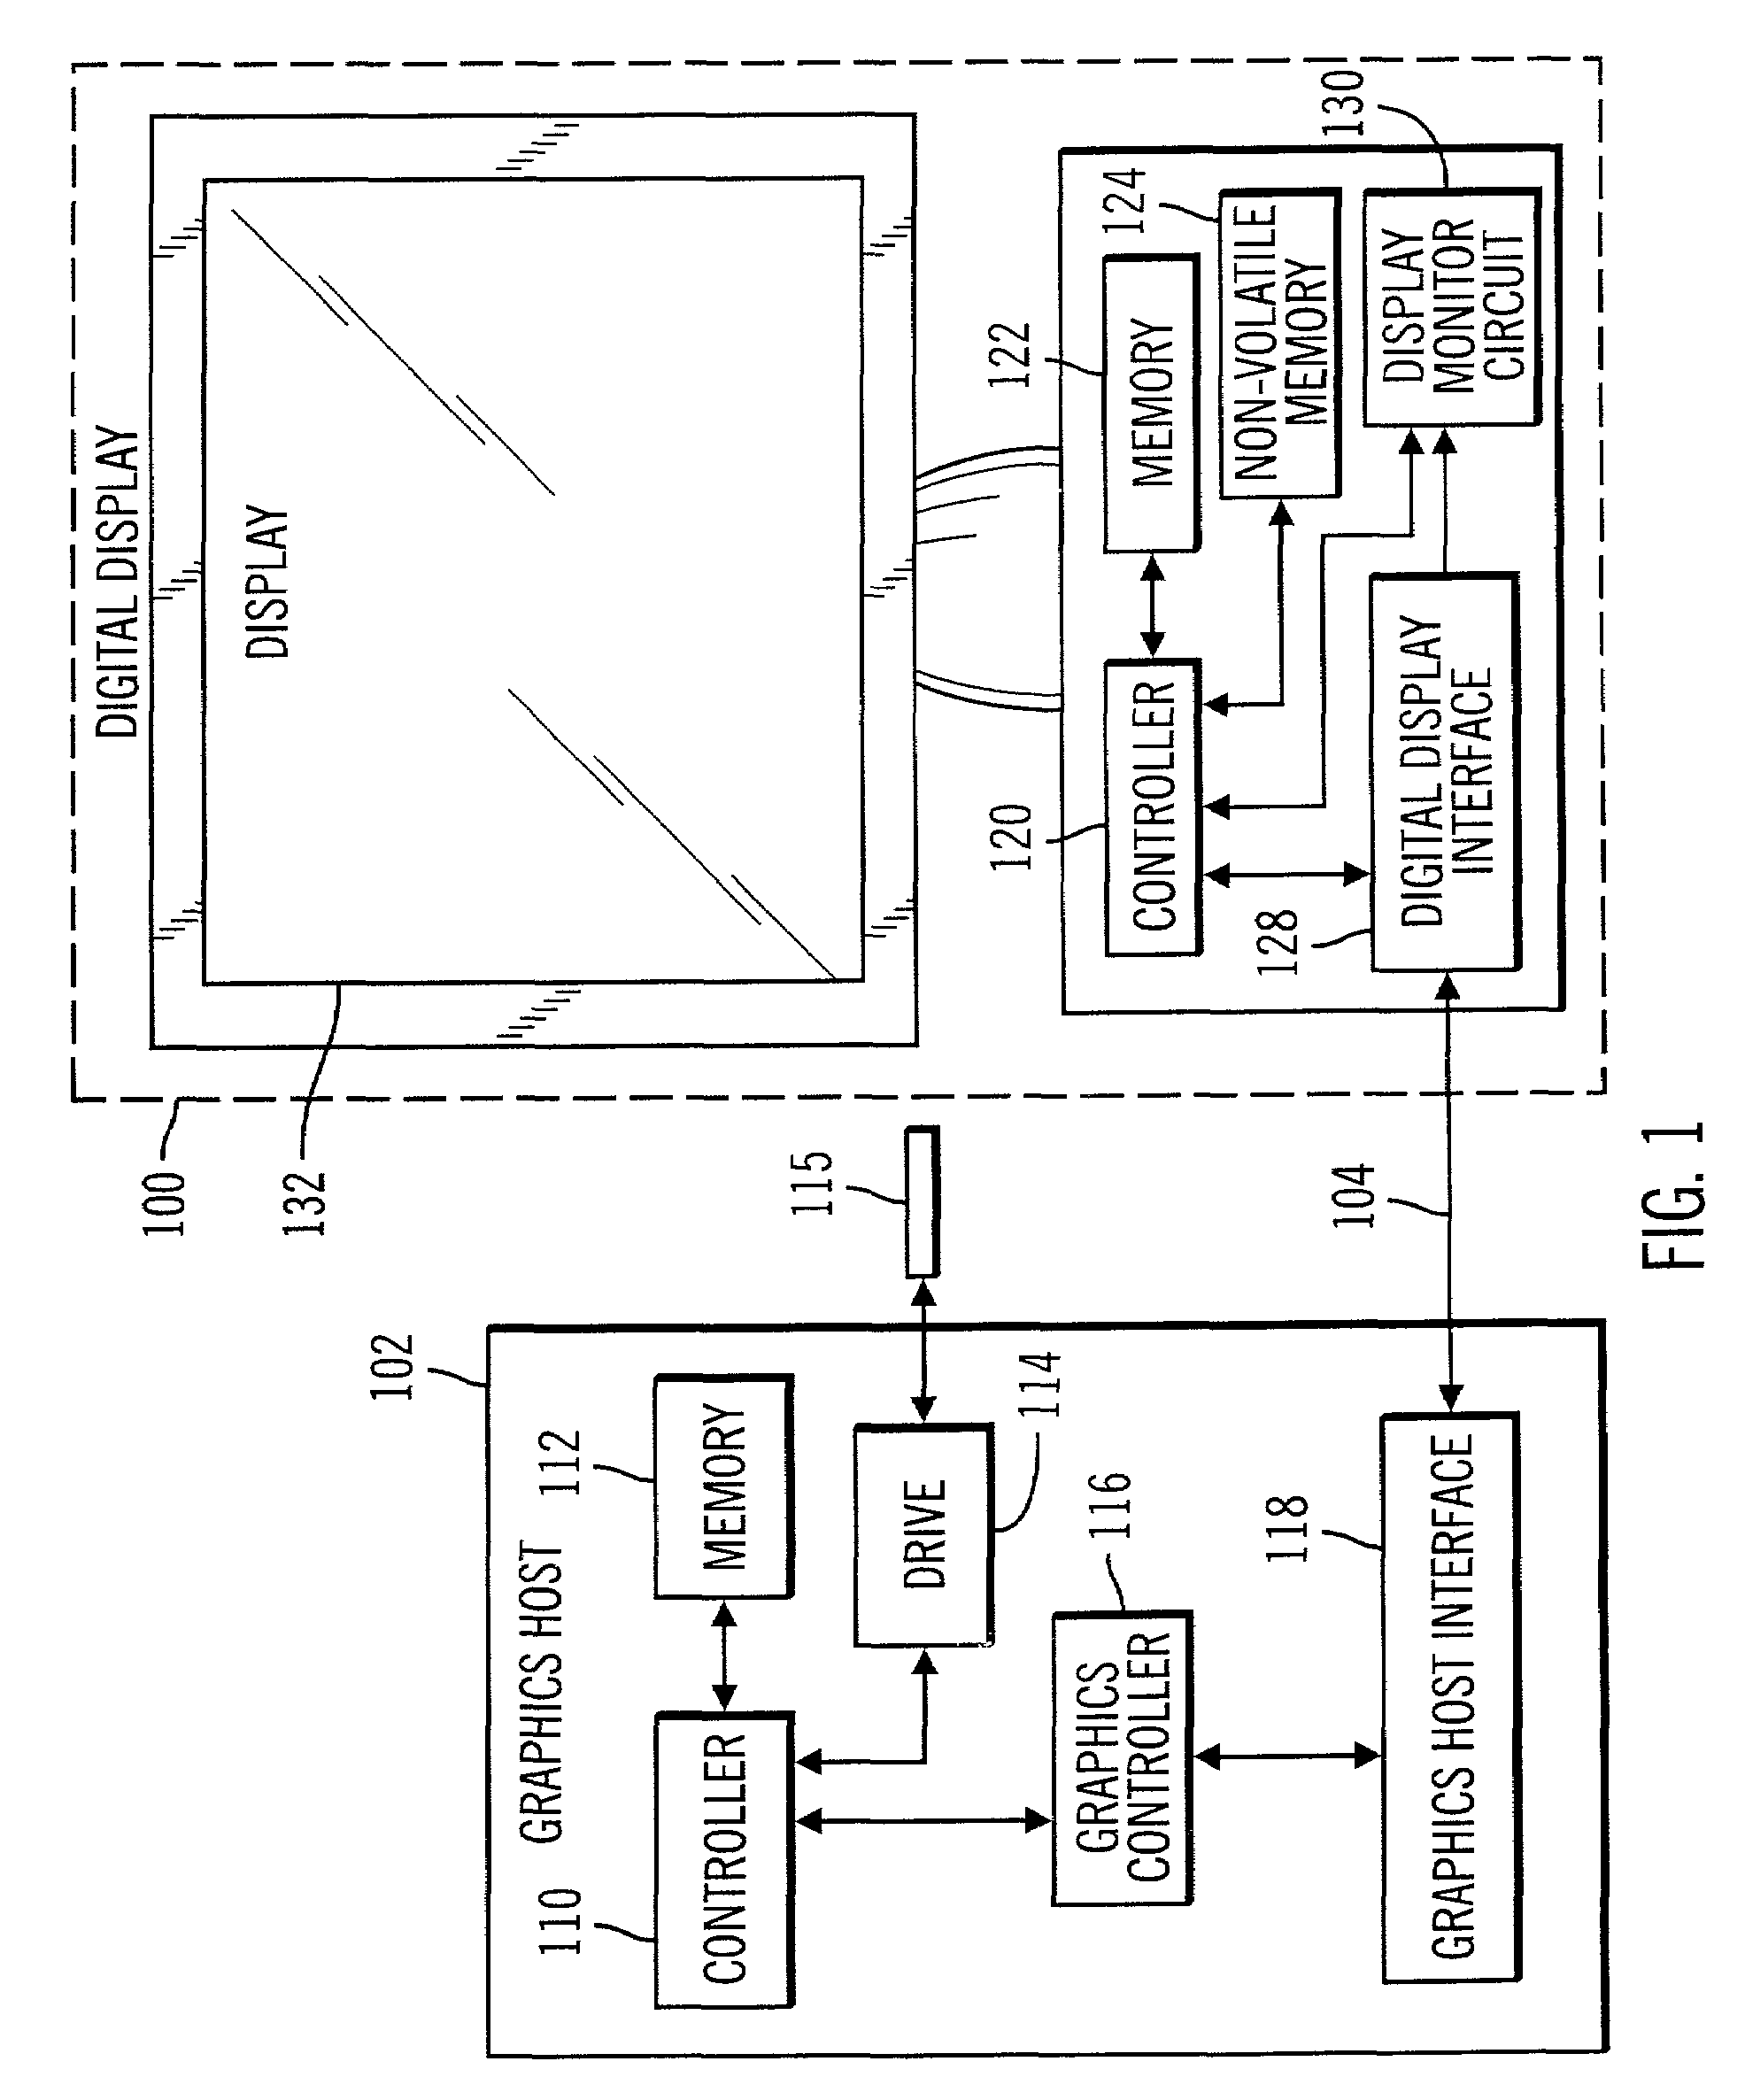 US7190738B2 - Data assisted serial link decoder using oversampling         - Google PatentsFamily